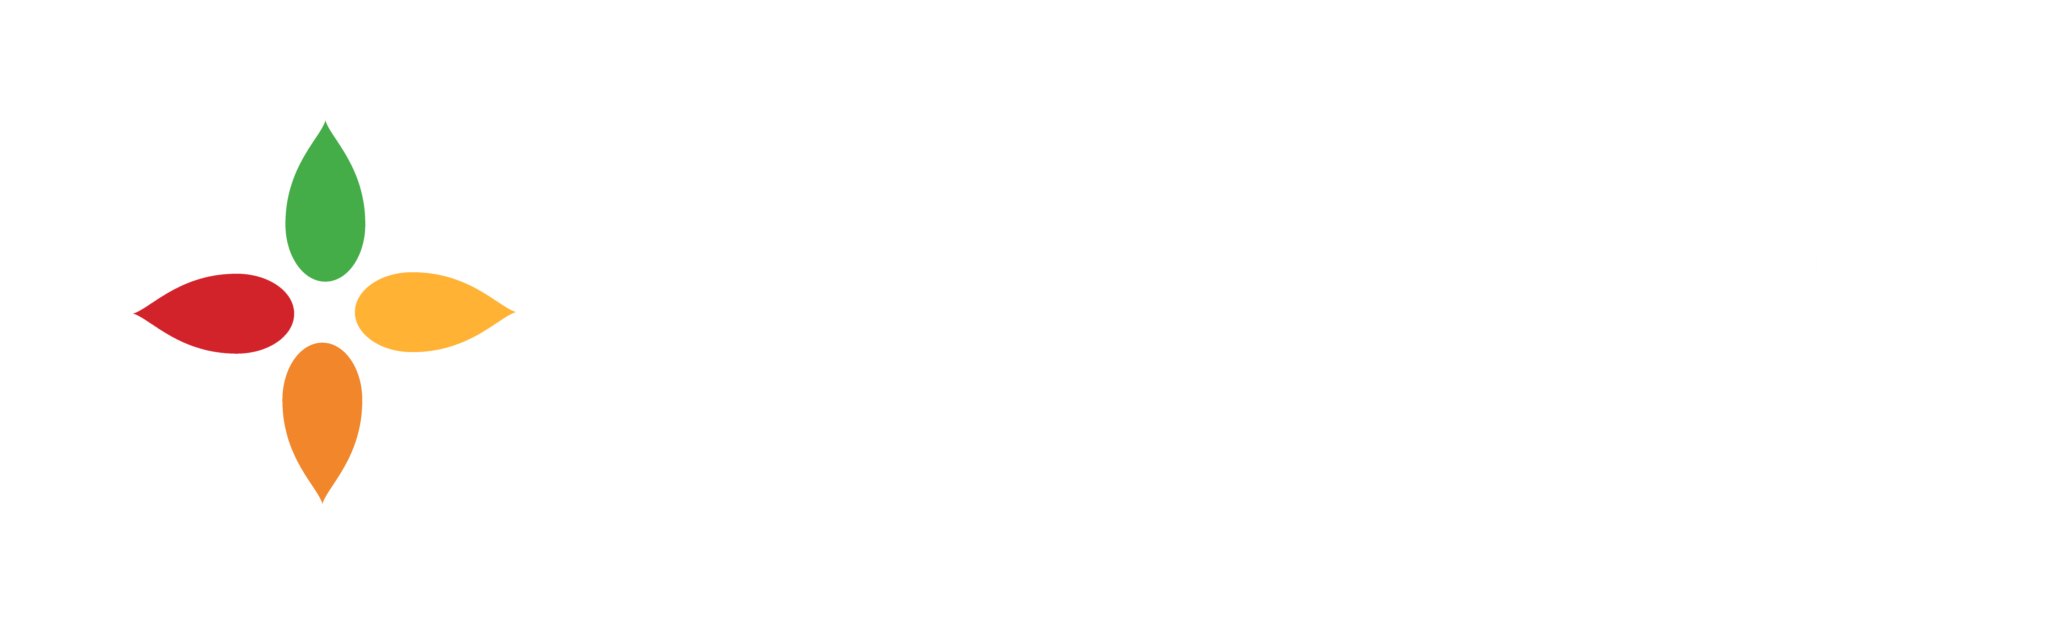 Formission logo white